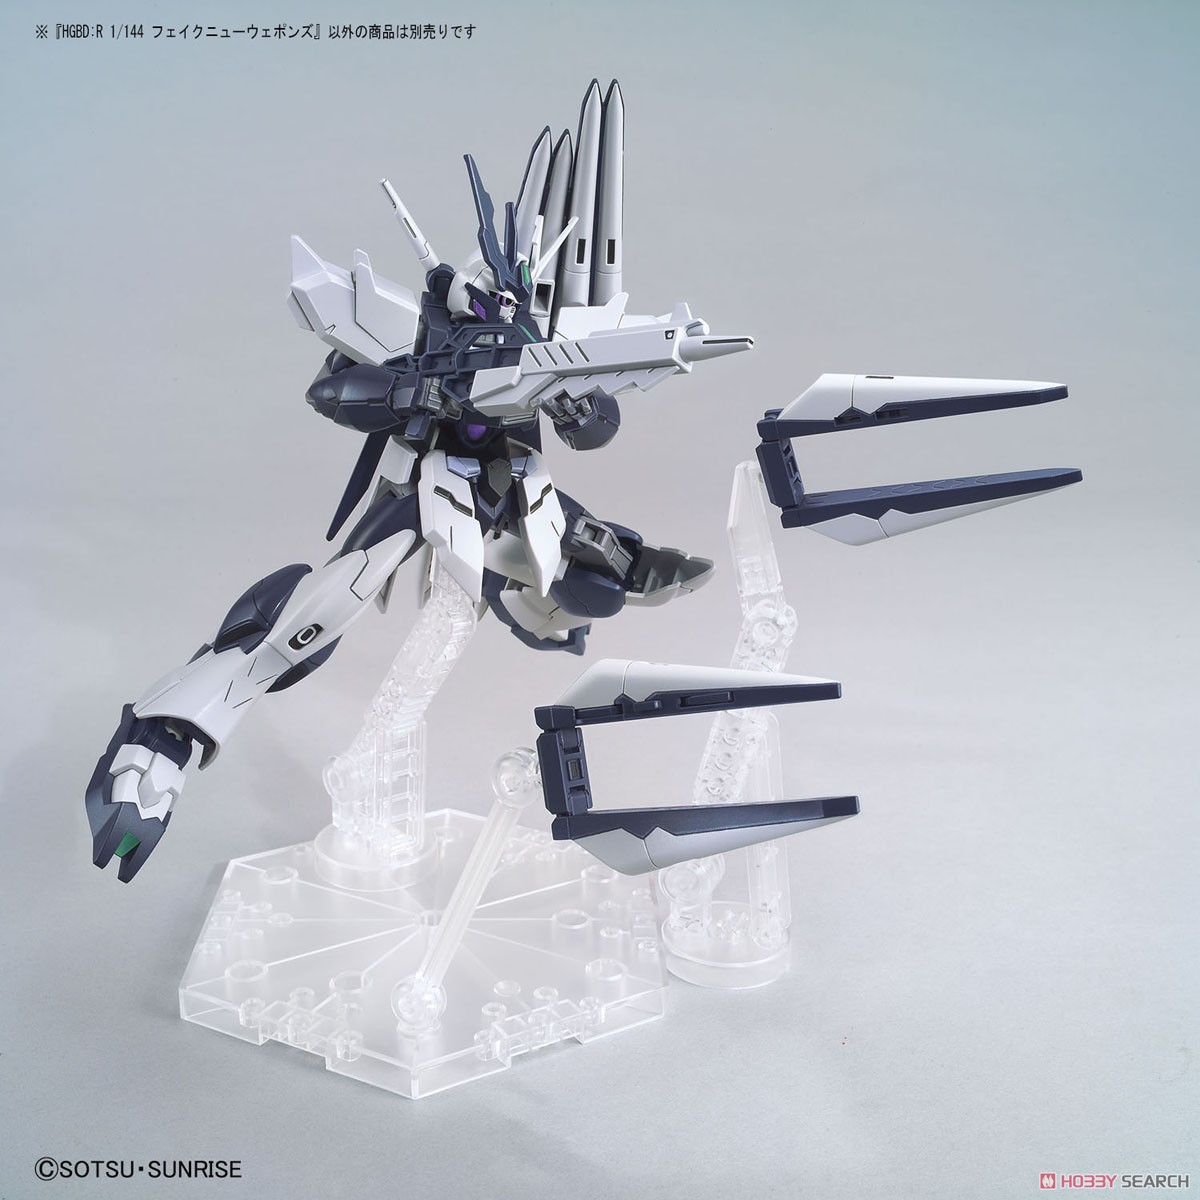 Fake Nu Weapons (HGBD:R) (Gundam Model Kits) Other picture3